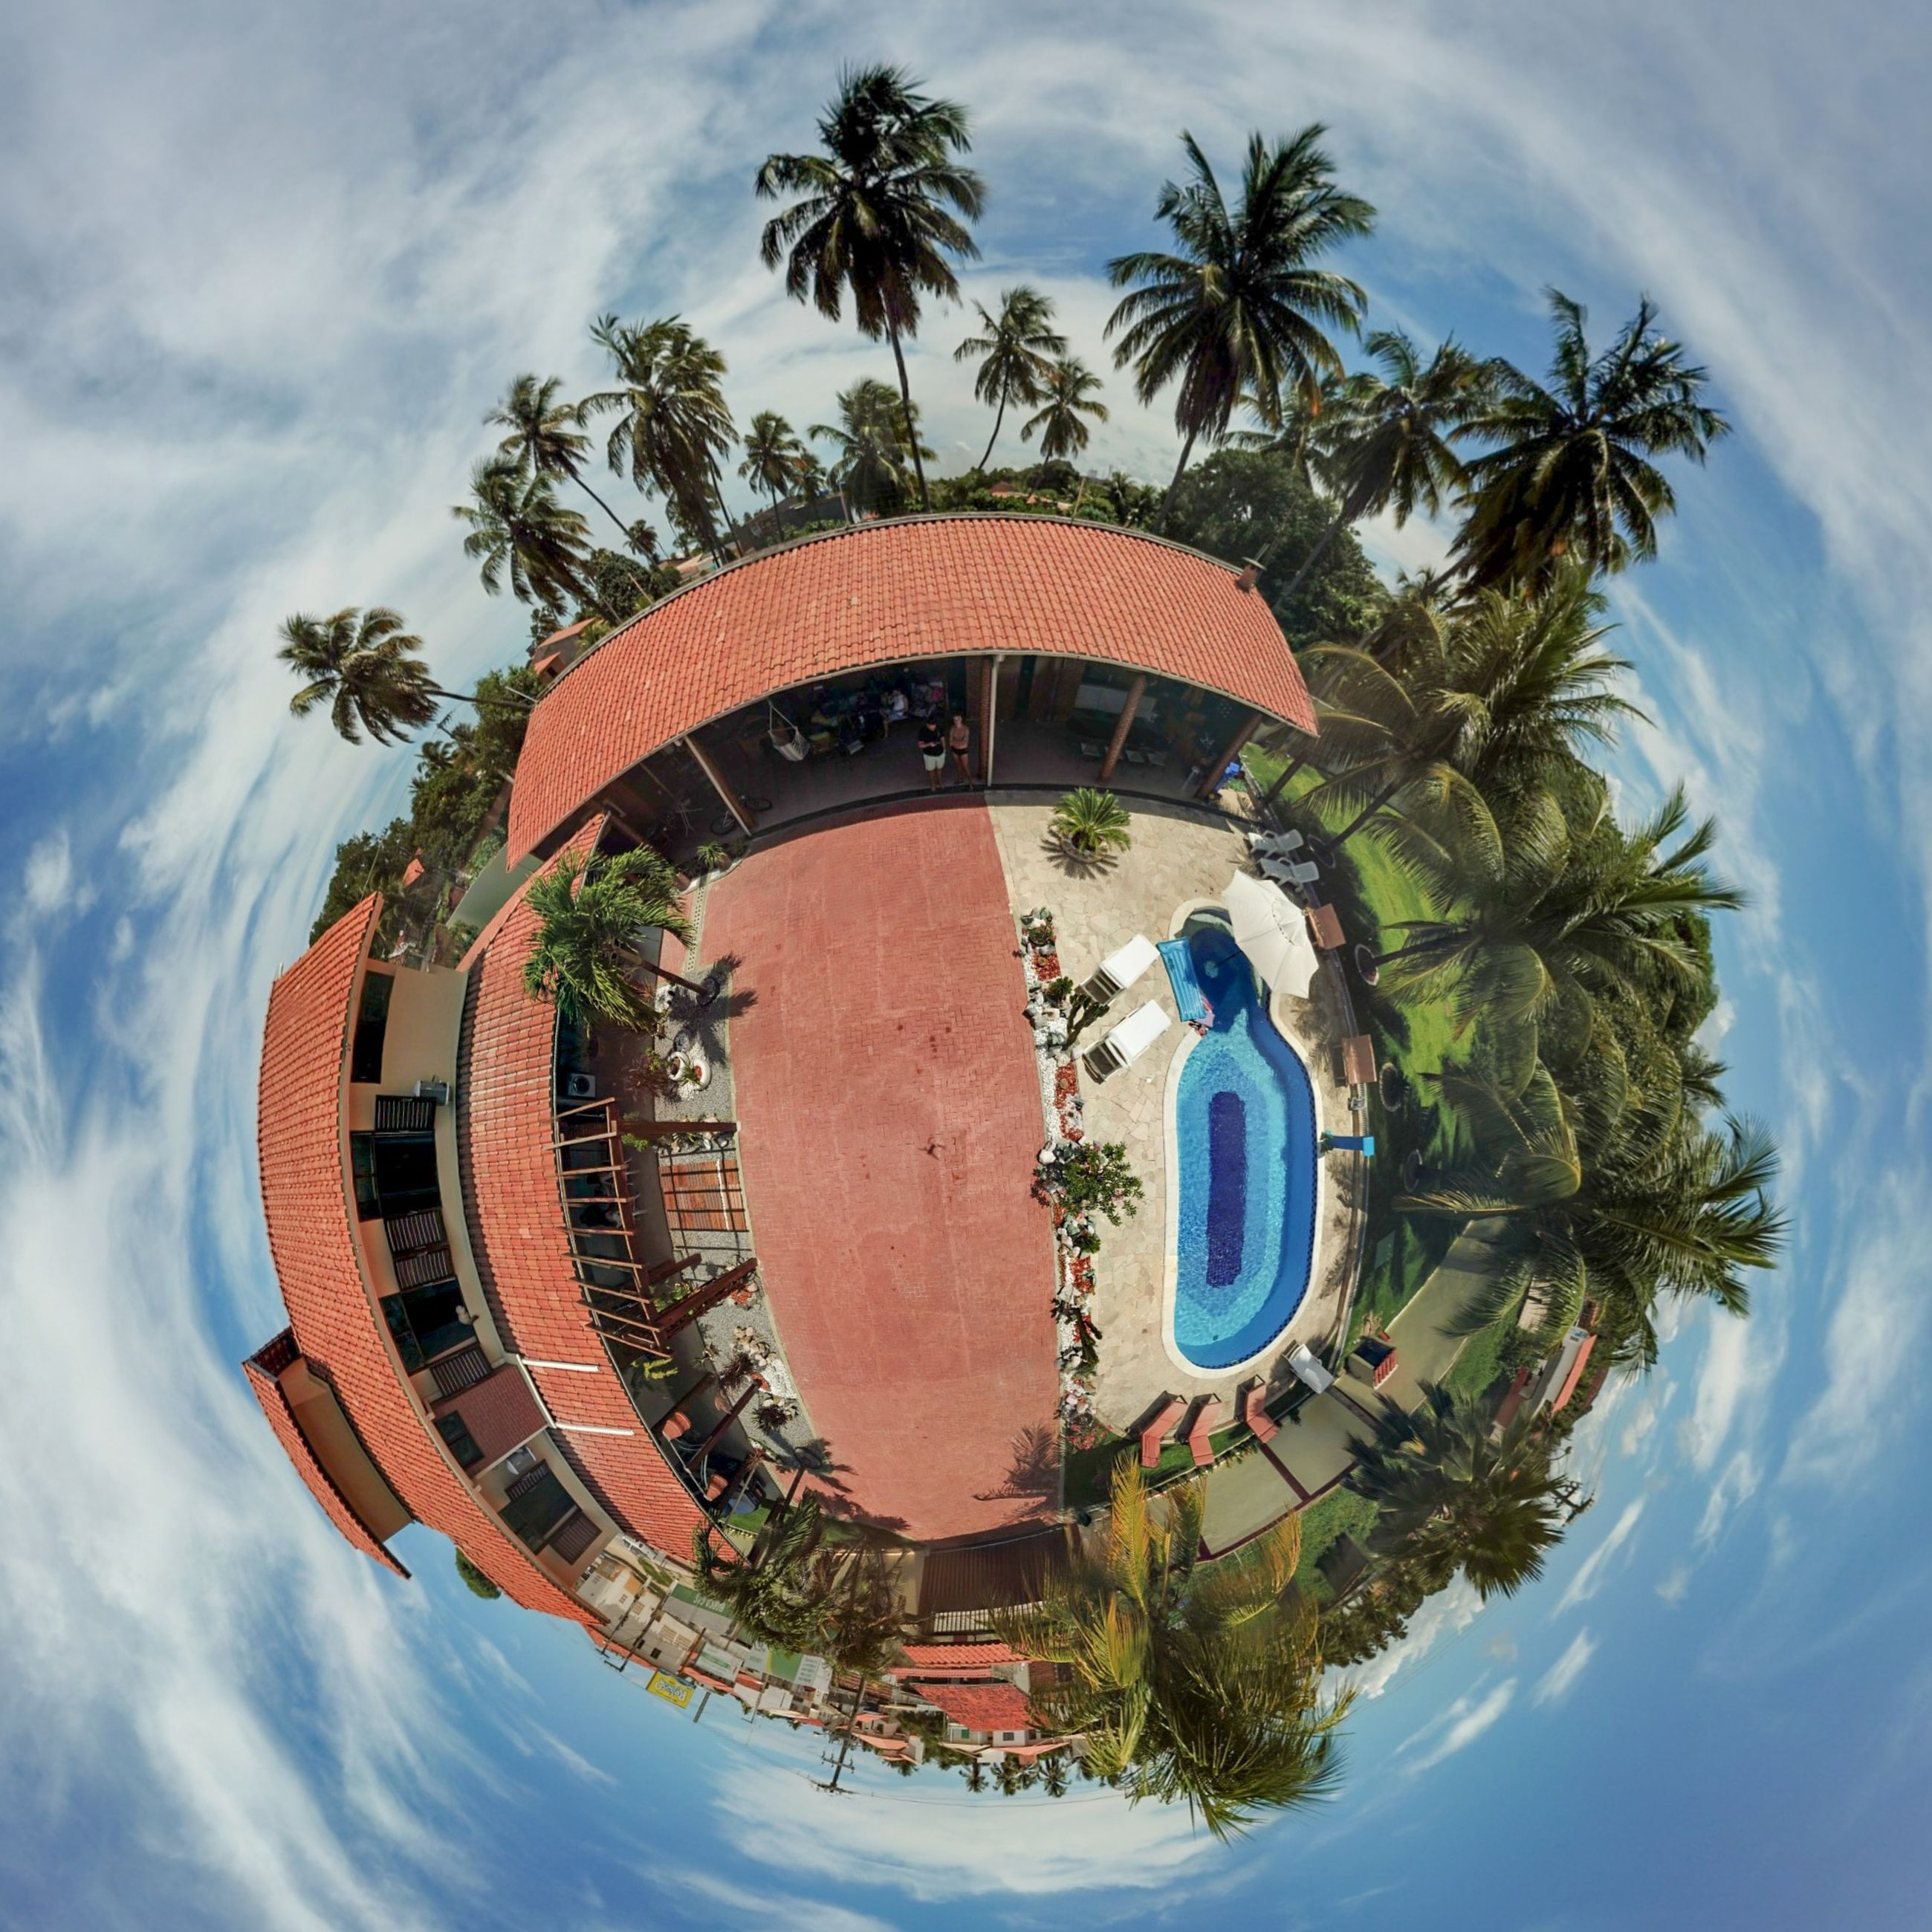 tree, palm tree, sky, cloud - sky, tropical climate, nature, plant, building exterior, circle, built structure, day, architecture, fish-eye lens, no people, shape, geometric shape, reflection, low angle view, outdoors, water, digital composite, swimming pool, distorted image